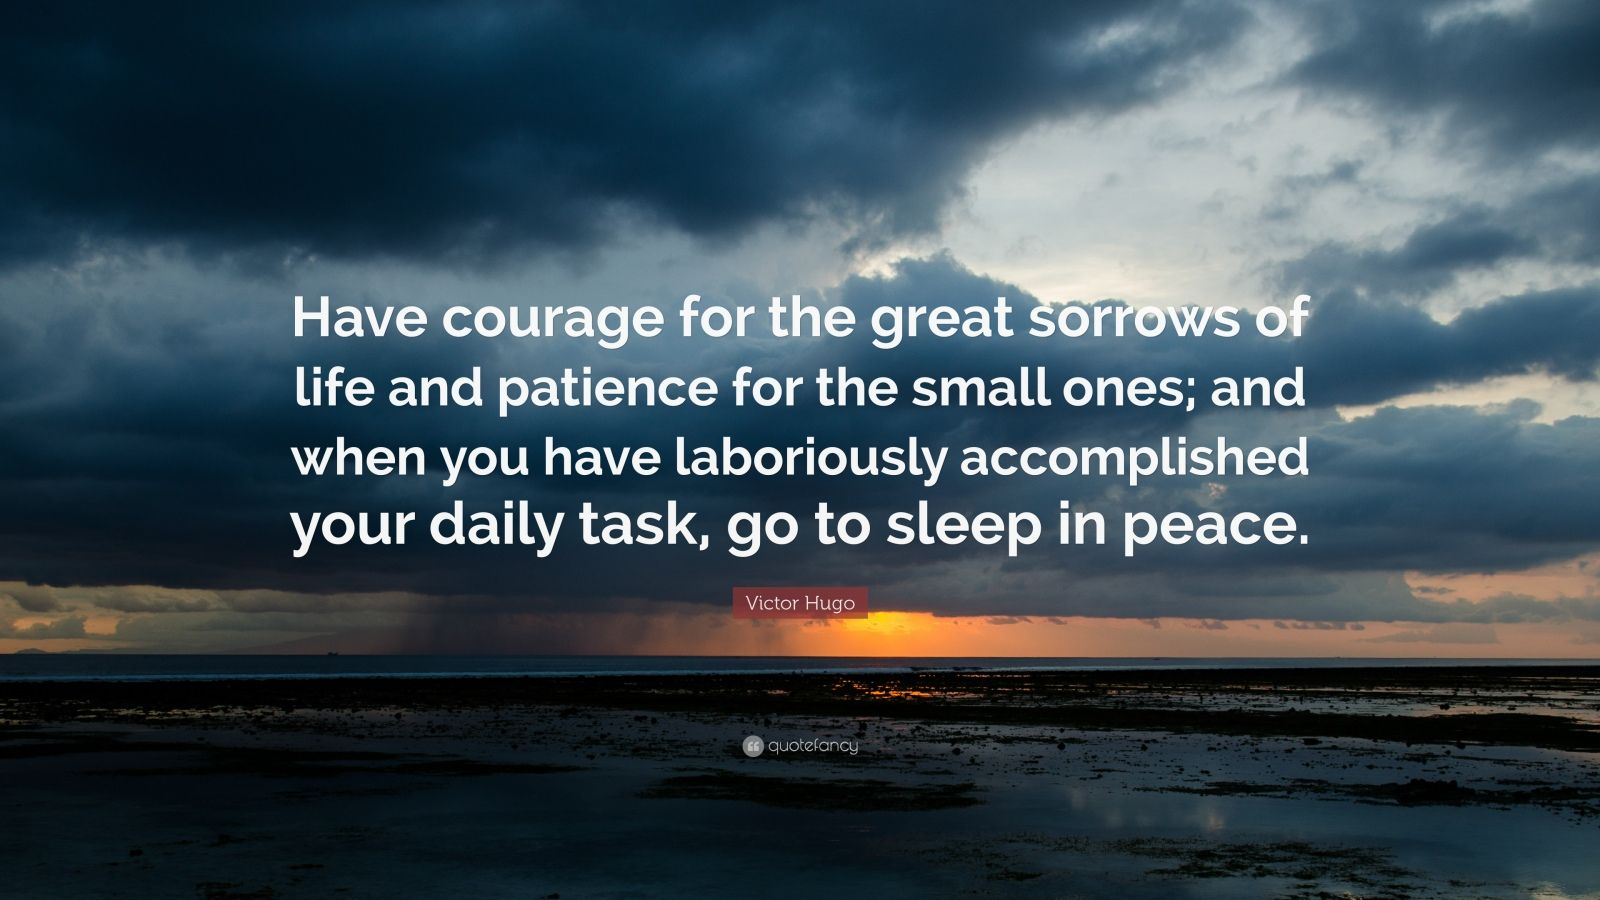 "Victor Hugo Quote: ""Have courage for the great sorrows of life and patience for the small ones; and when you have laboriously accomplished your daily task, go to sleep in peace."""